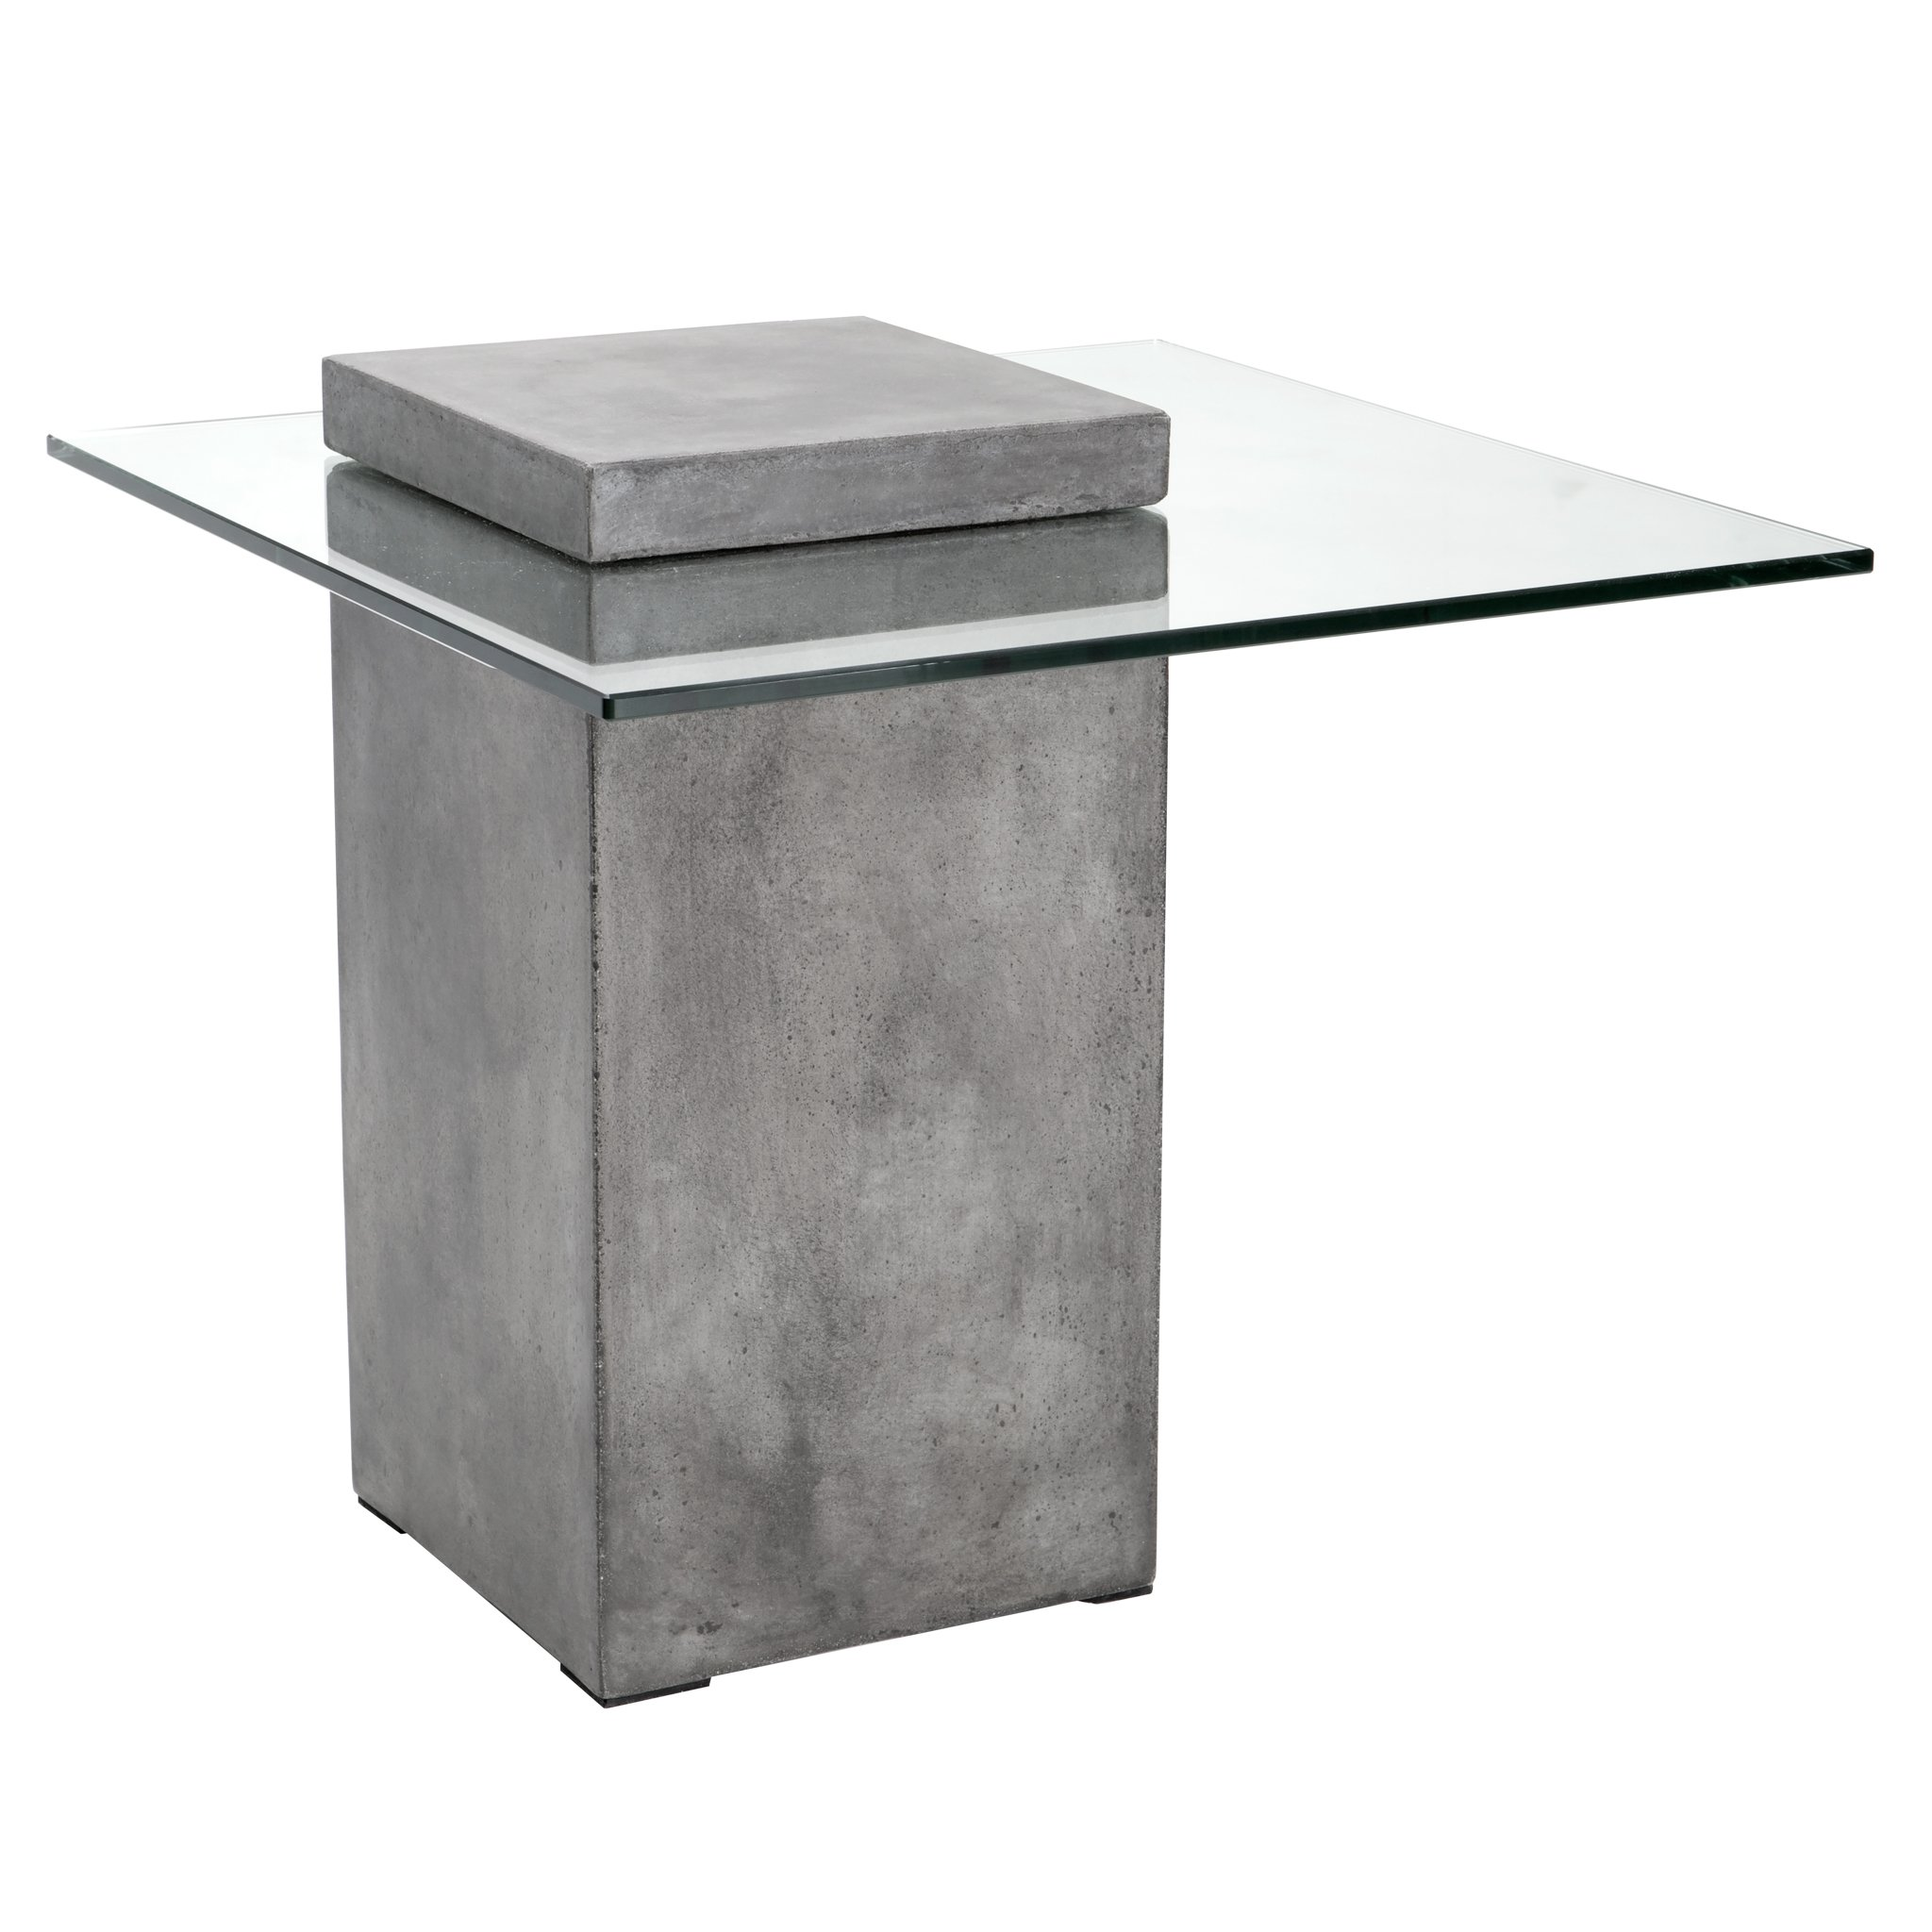 Sunpan Modern Grange End Table, Anthracite Grey by Sunpan Modern